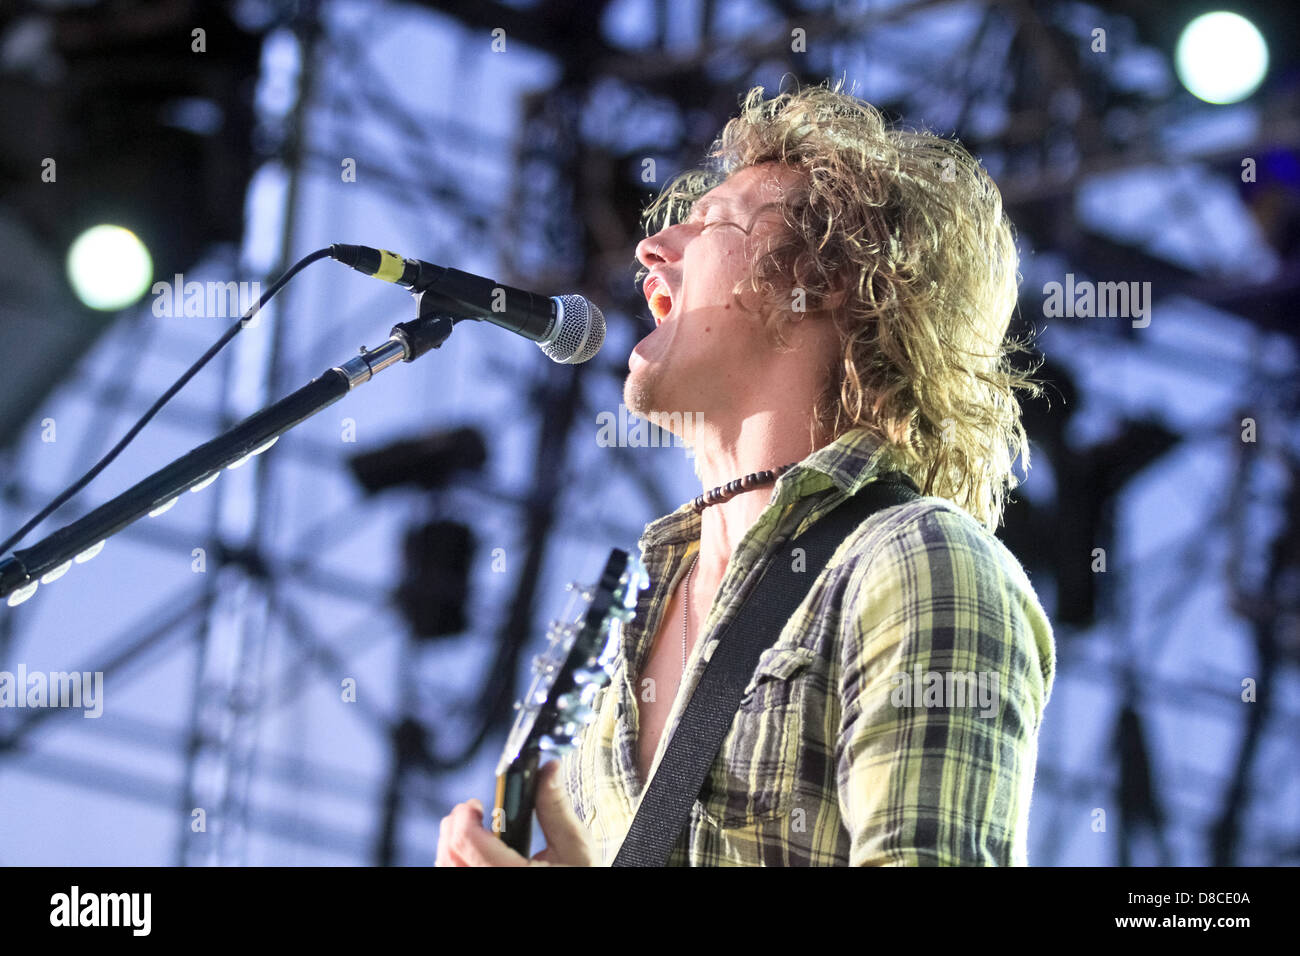 Lead vocalist of Fuel, Brett Scallions sings at Musikfest 2011. - Stock Image